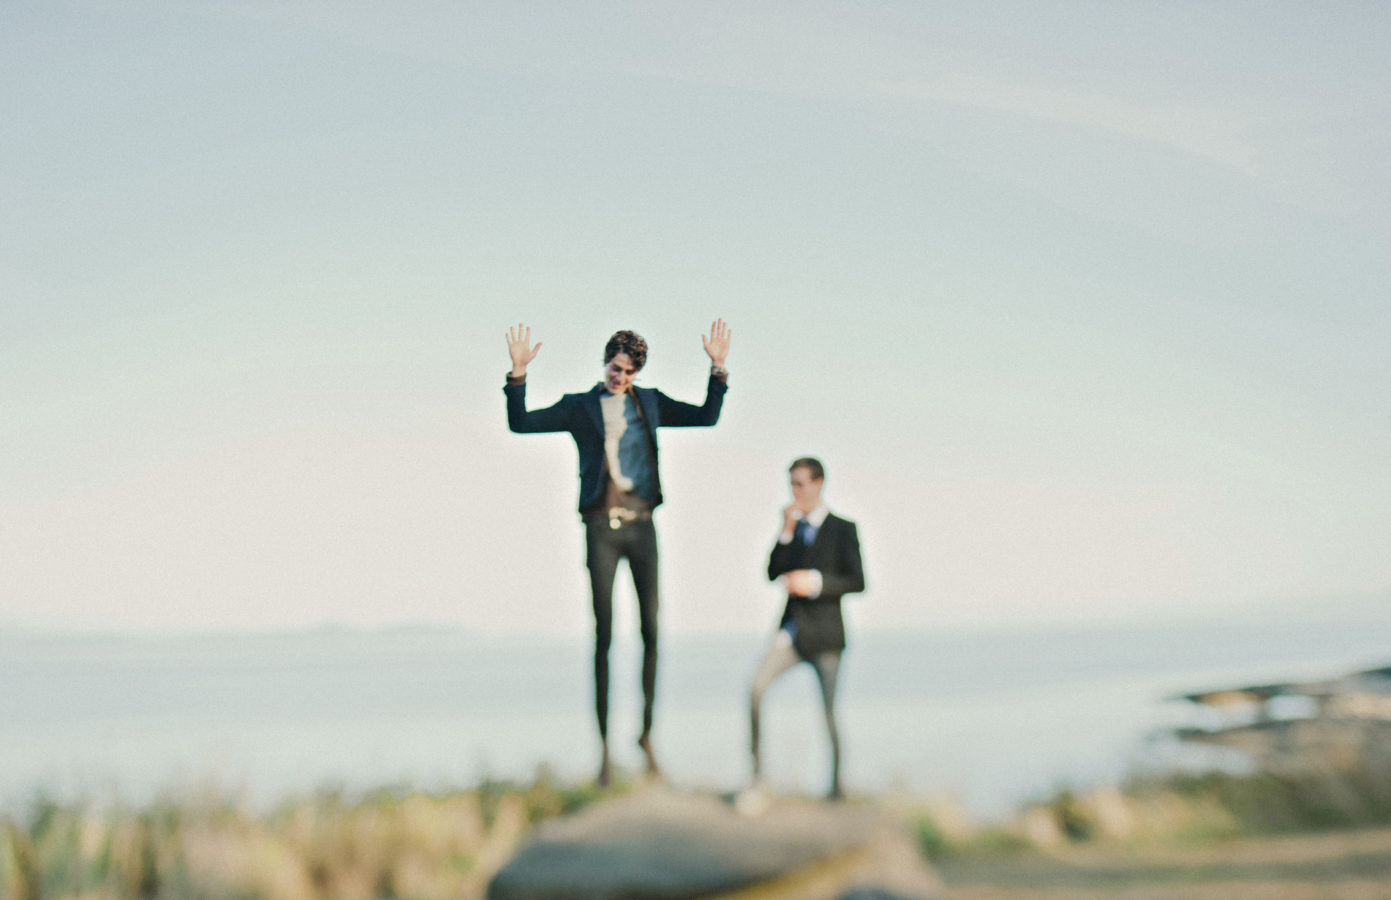 two grooms on a bluff by the ocean with one of them jumping in the air